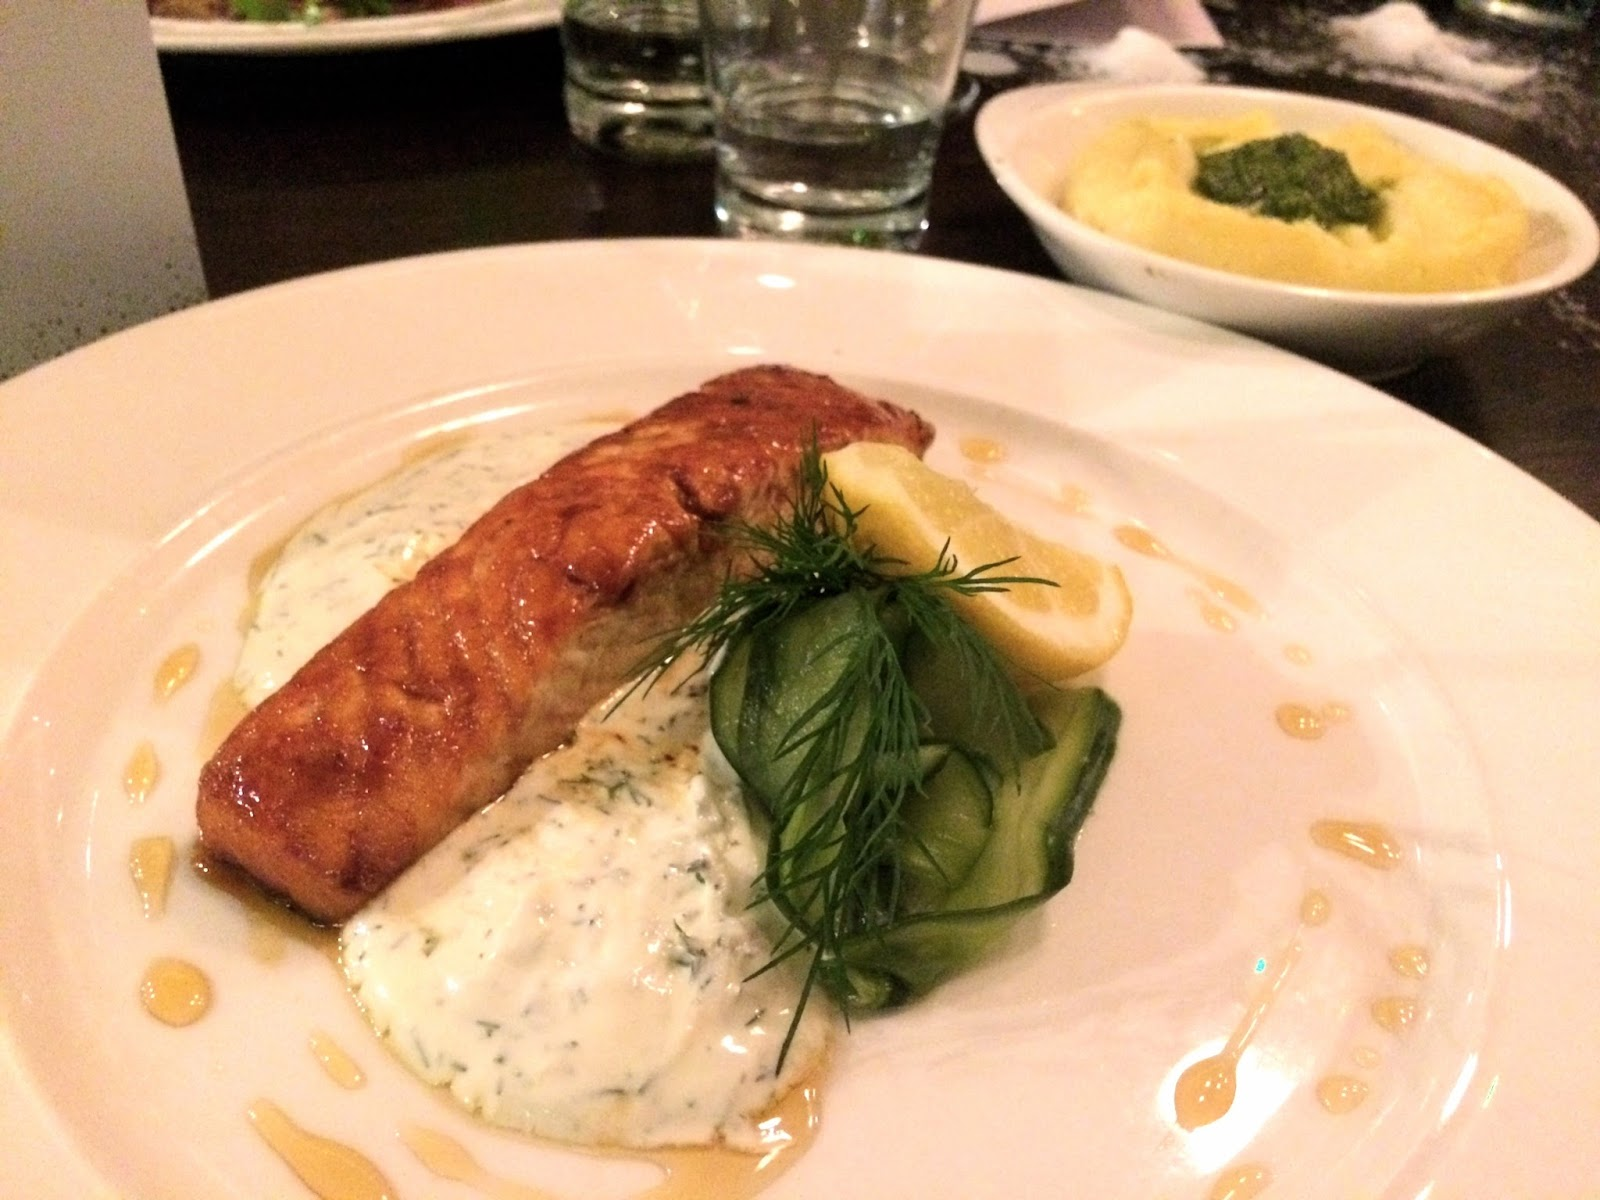 Salmon fillet meal at Gusto, Leeds